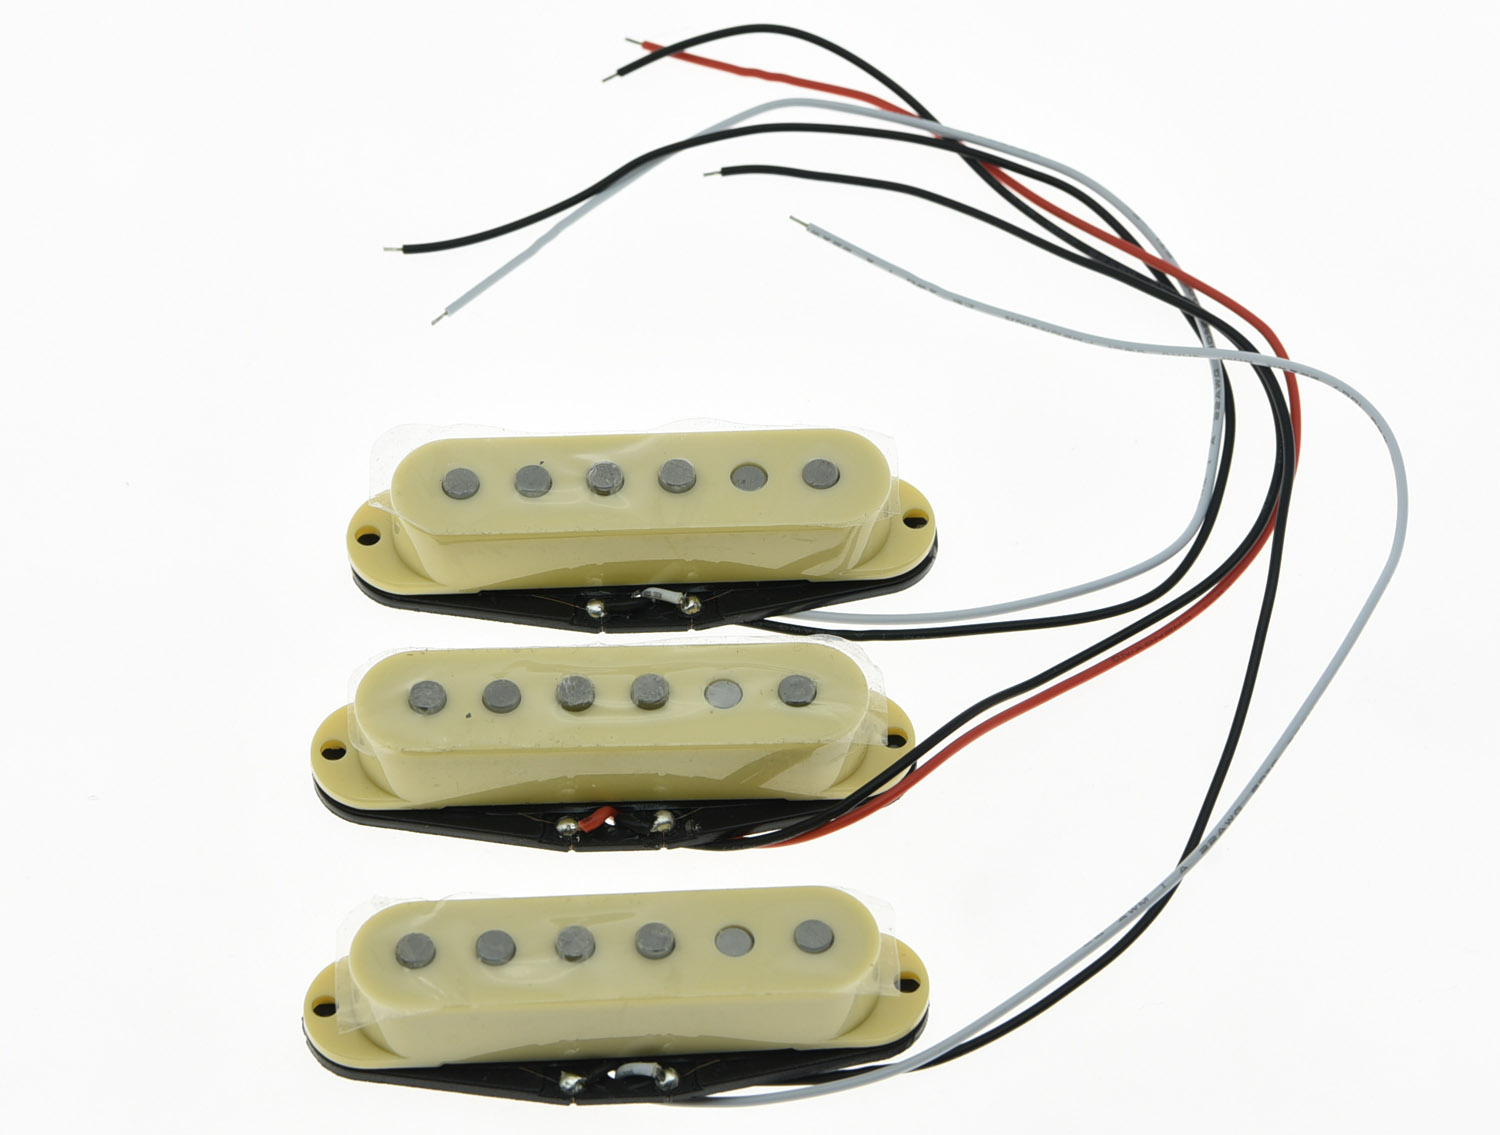 3x Cream  Alnico 5 Single Coil Pickups ST Strat SSS Pickup Set vintage voice single coil pickups fits for stratocaster ceramic bobbin alnico single coil guitar pickup staggered pole top